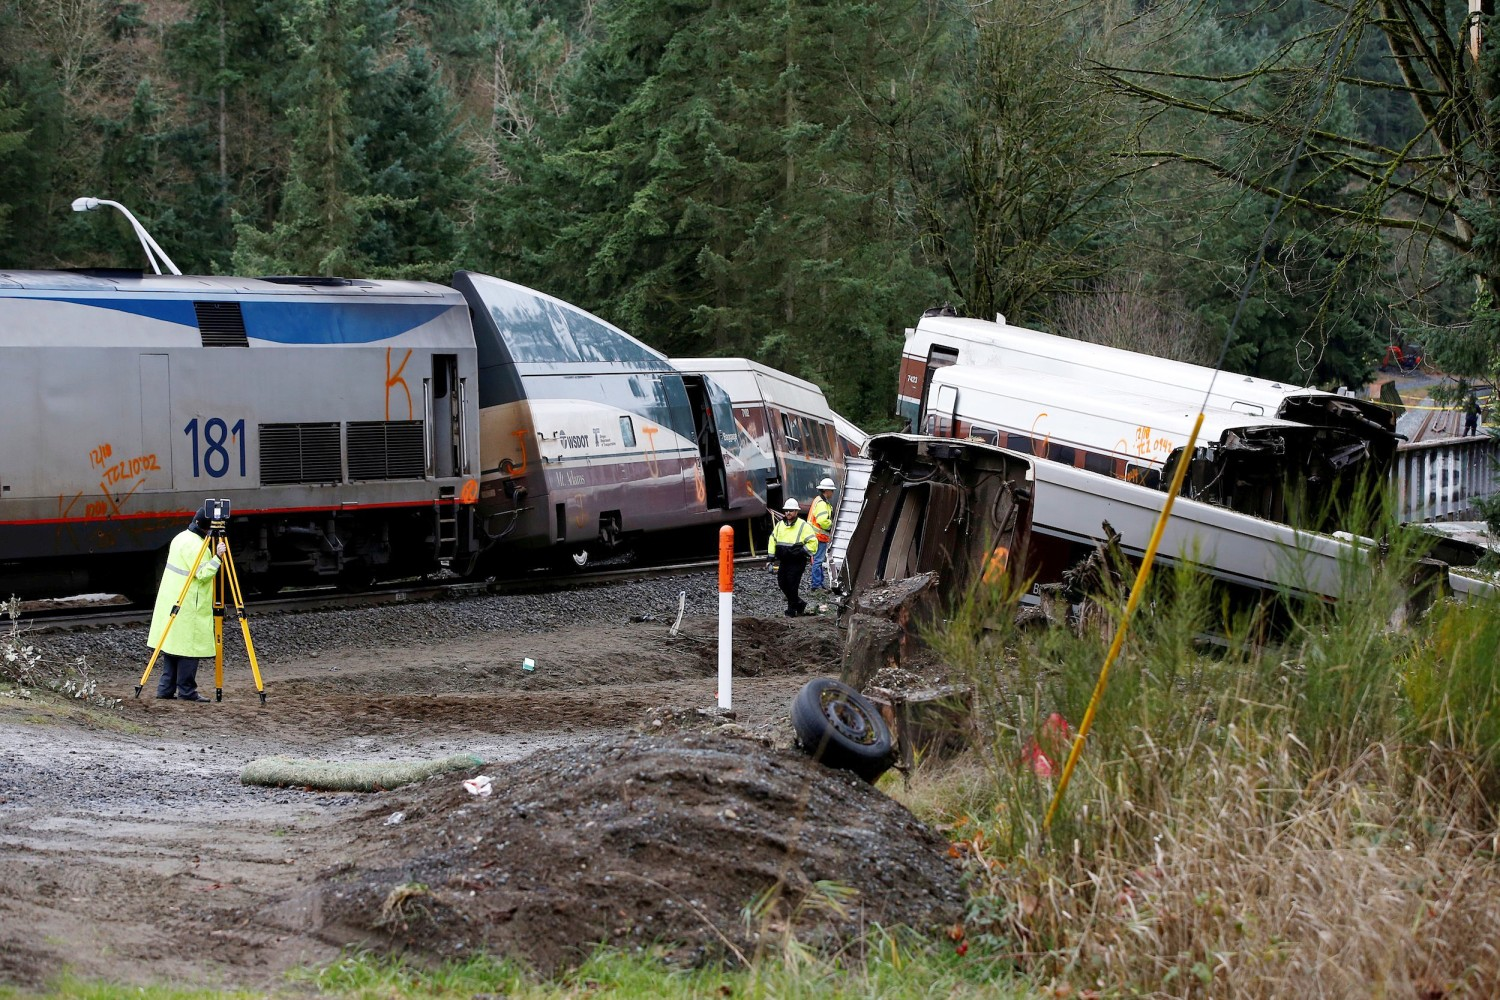 an analysis of the train collision accident Train accidents damage infrastructure and rolling stock, disrupt operations, and may result in casualties and environmental damage while the majority of previous studies focused on the safety risks associated with train derailments or highway-rail grade crossing collisions, much less work has been undertaken to evaluate.